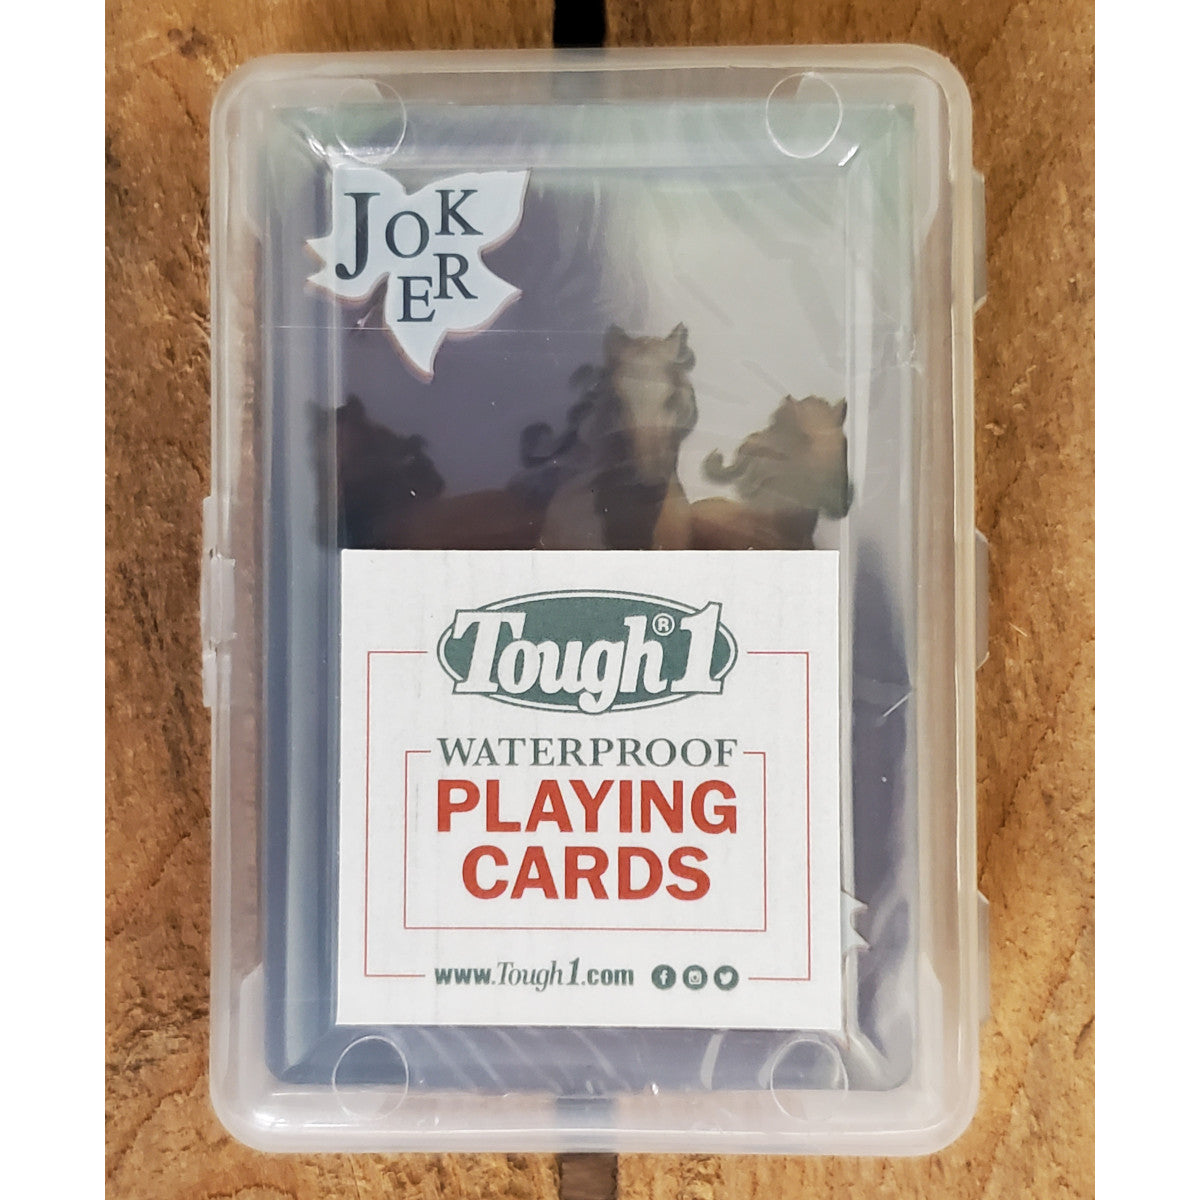 Tough-1 Horse Waterproof Playing Cards